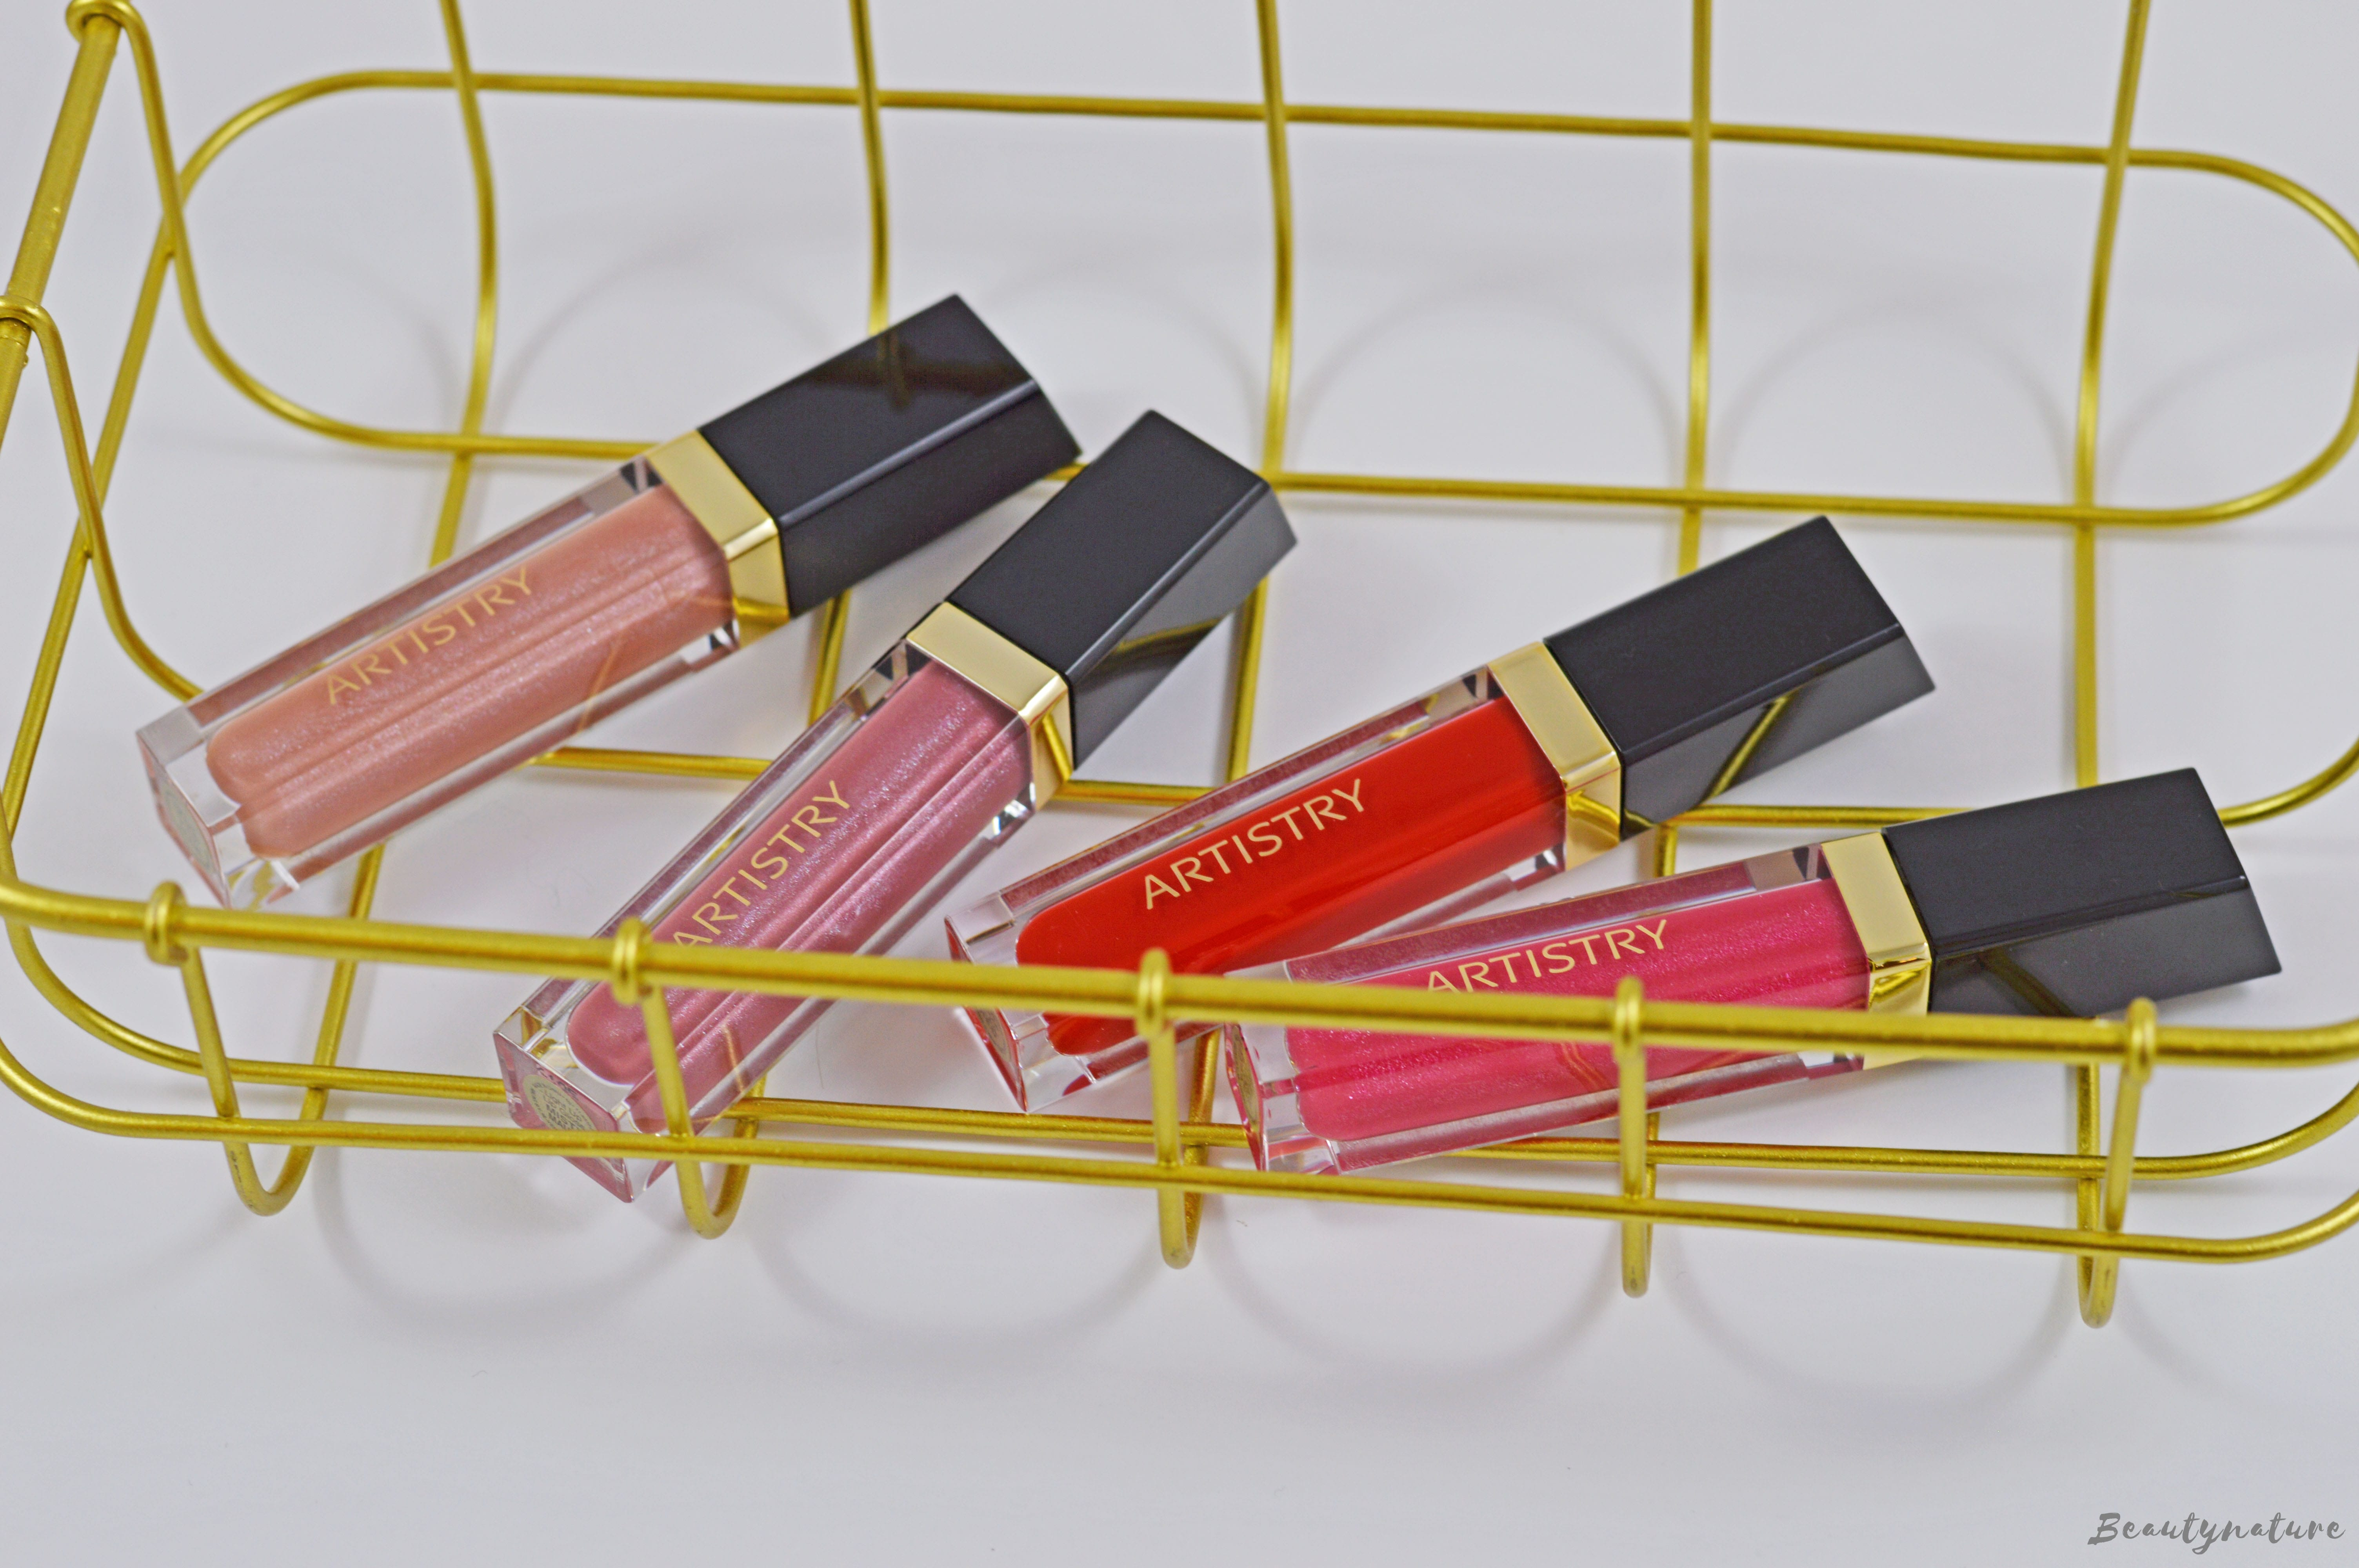 Artistry Light it up Lipgloss